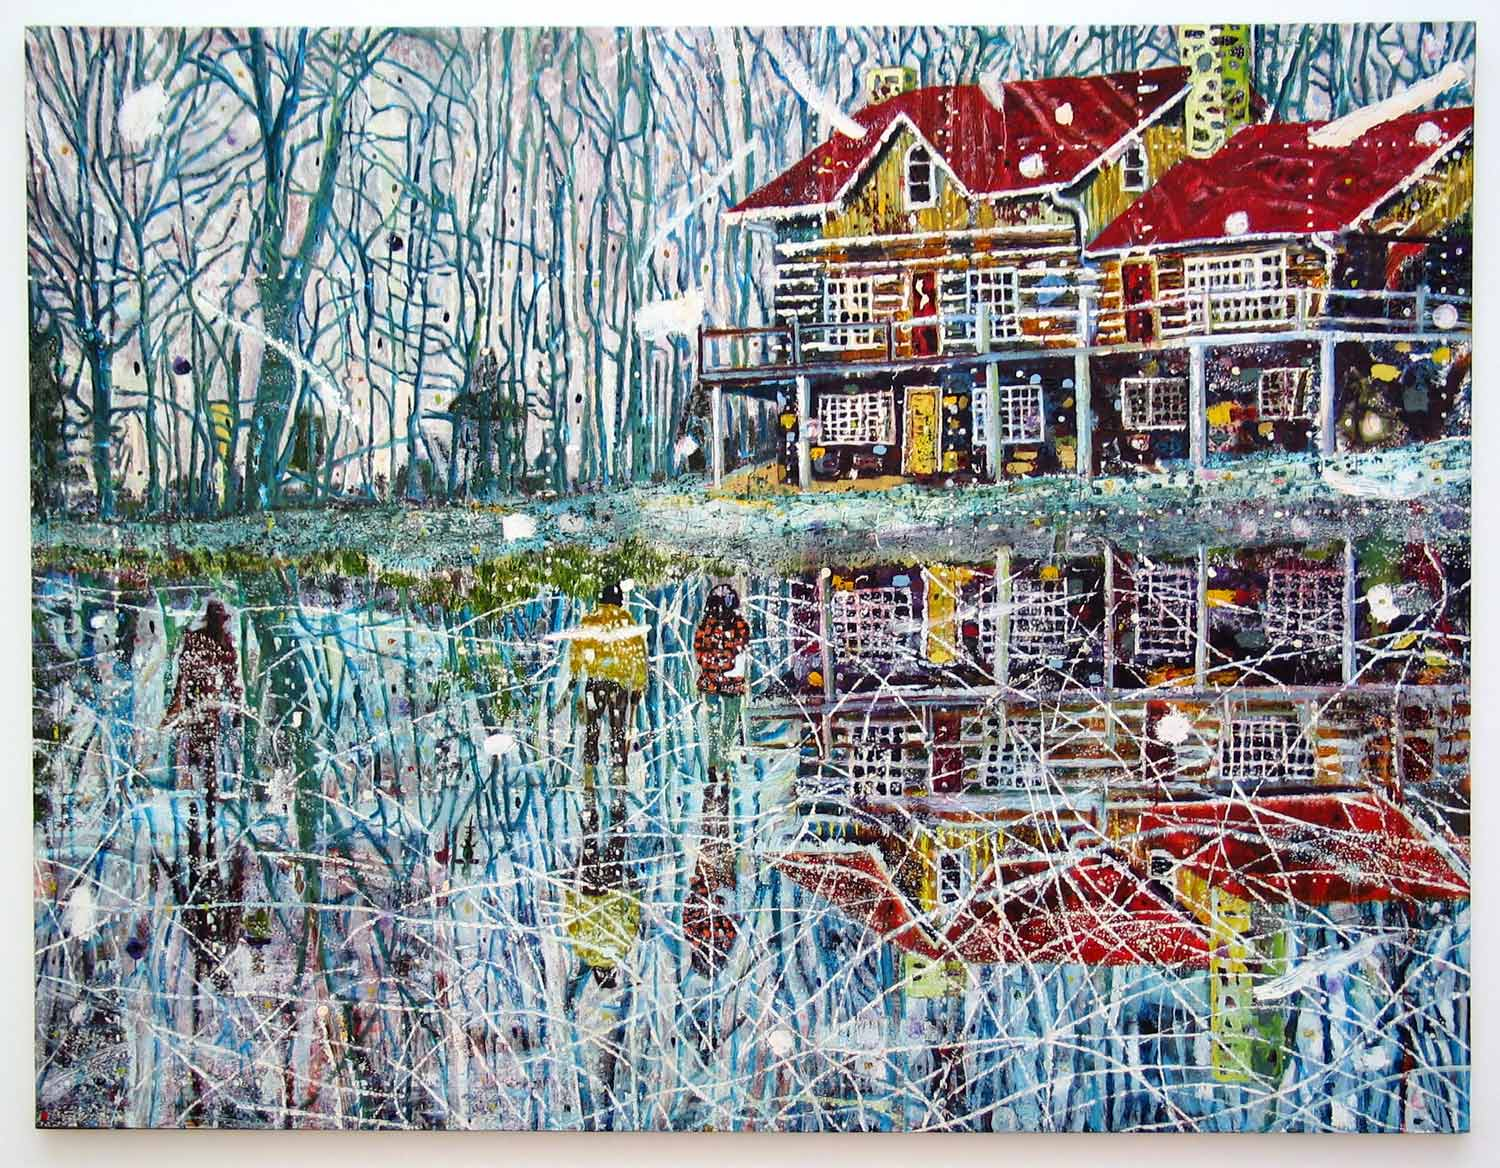 Pond Life, 1993, by Peter Doig